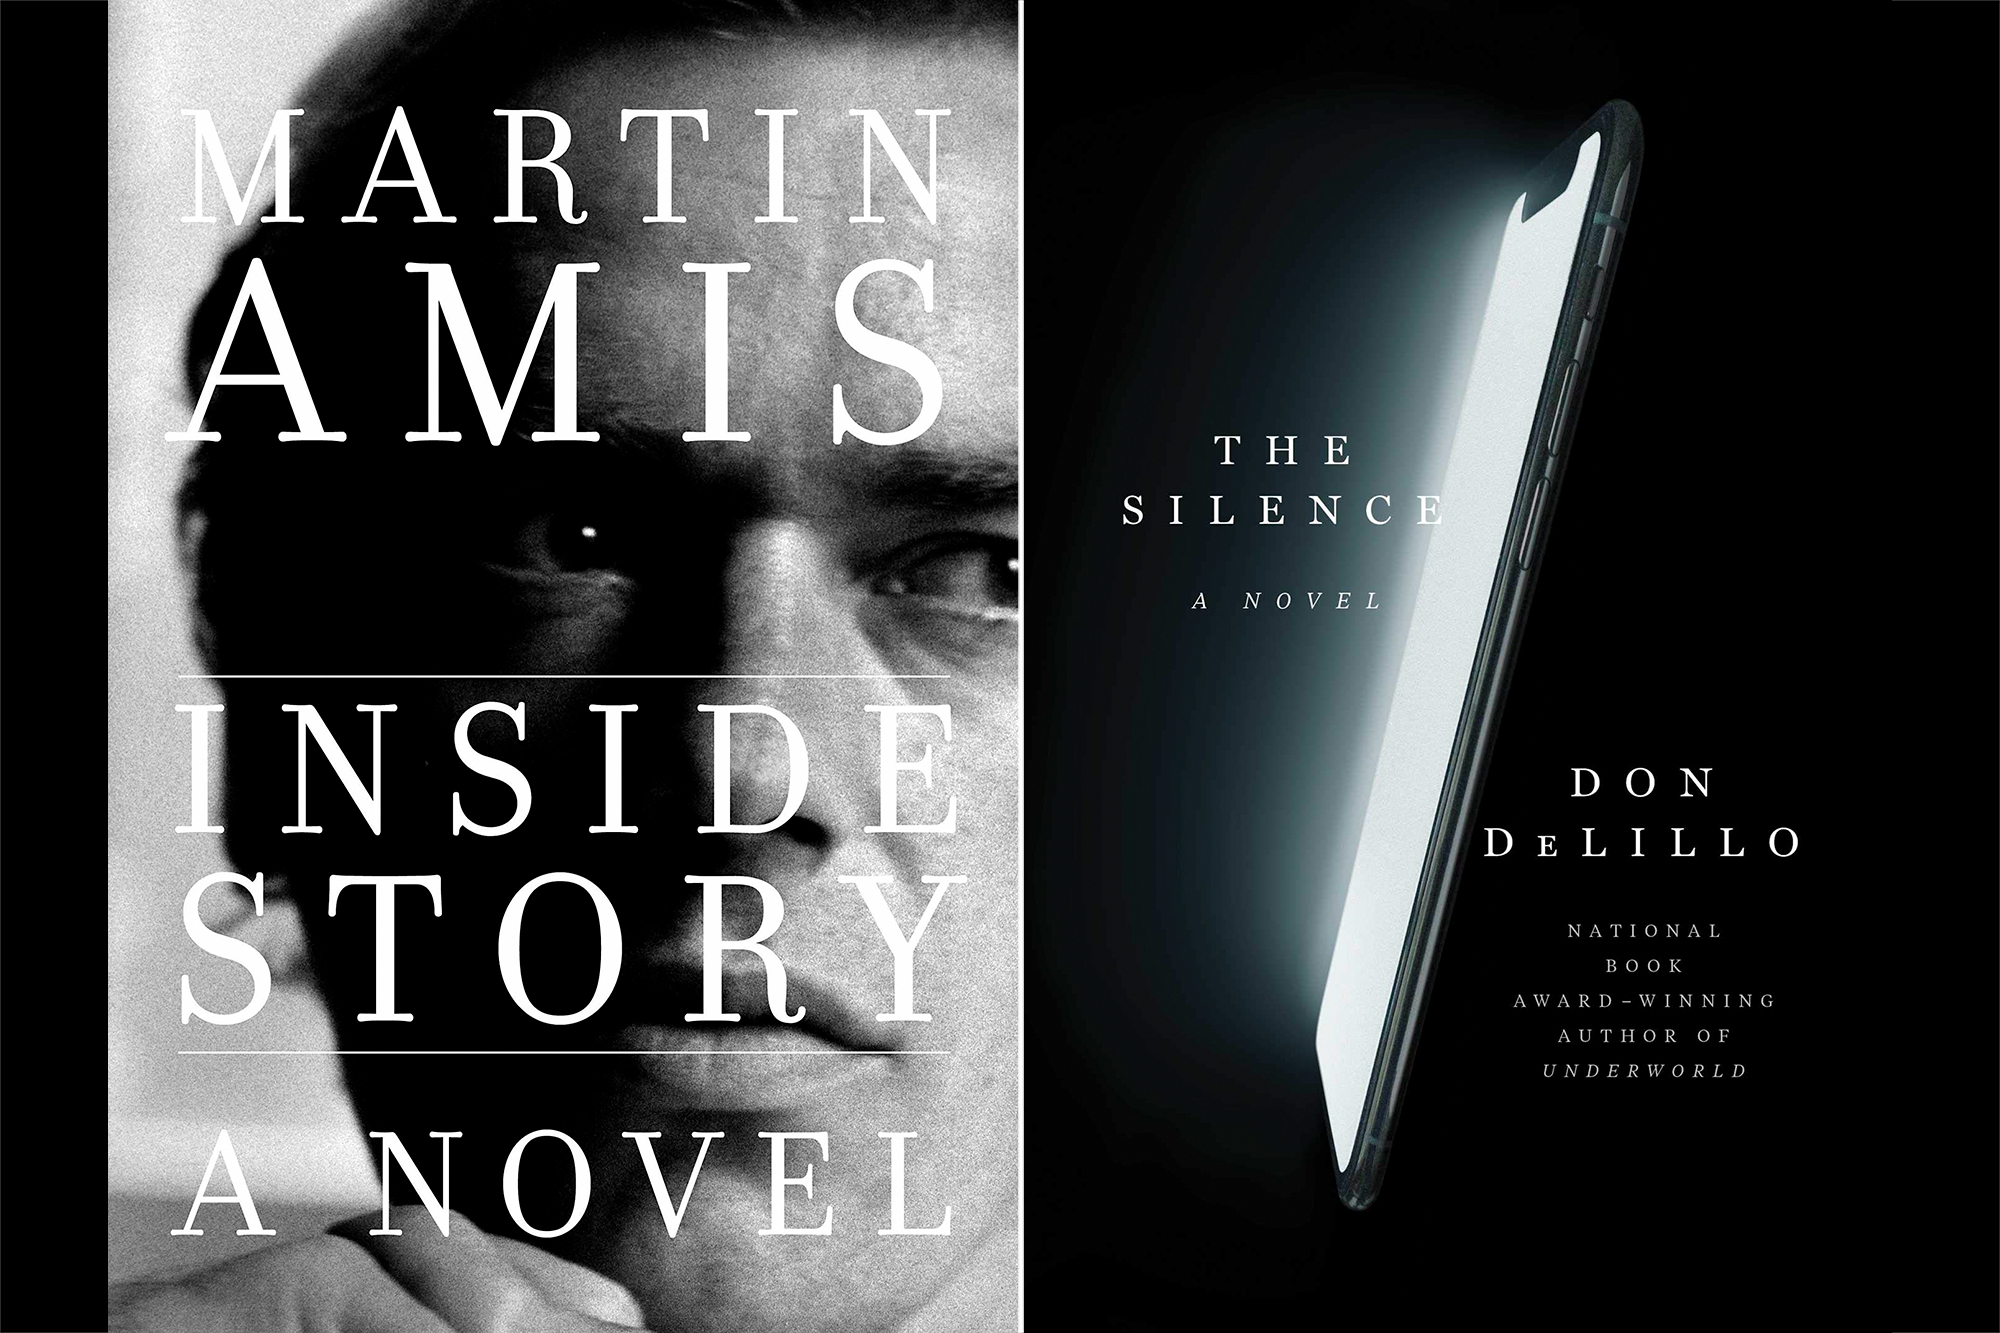 Inside Story by Martin Amis, The Silence by Don DeLillo